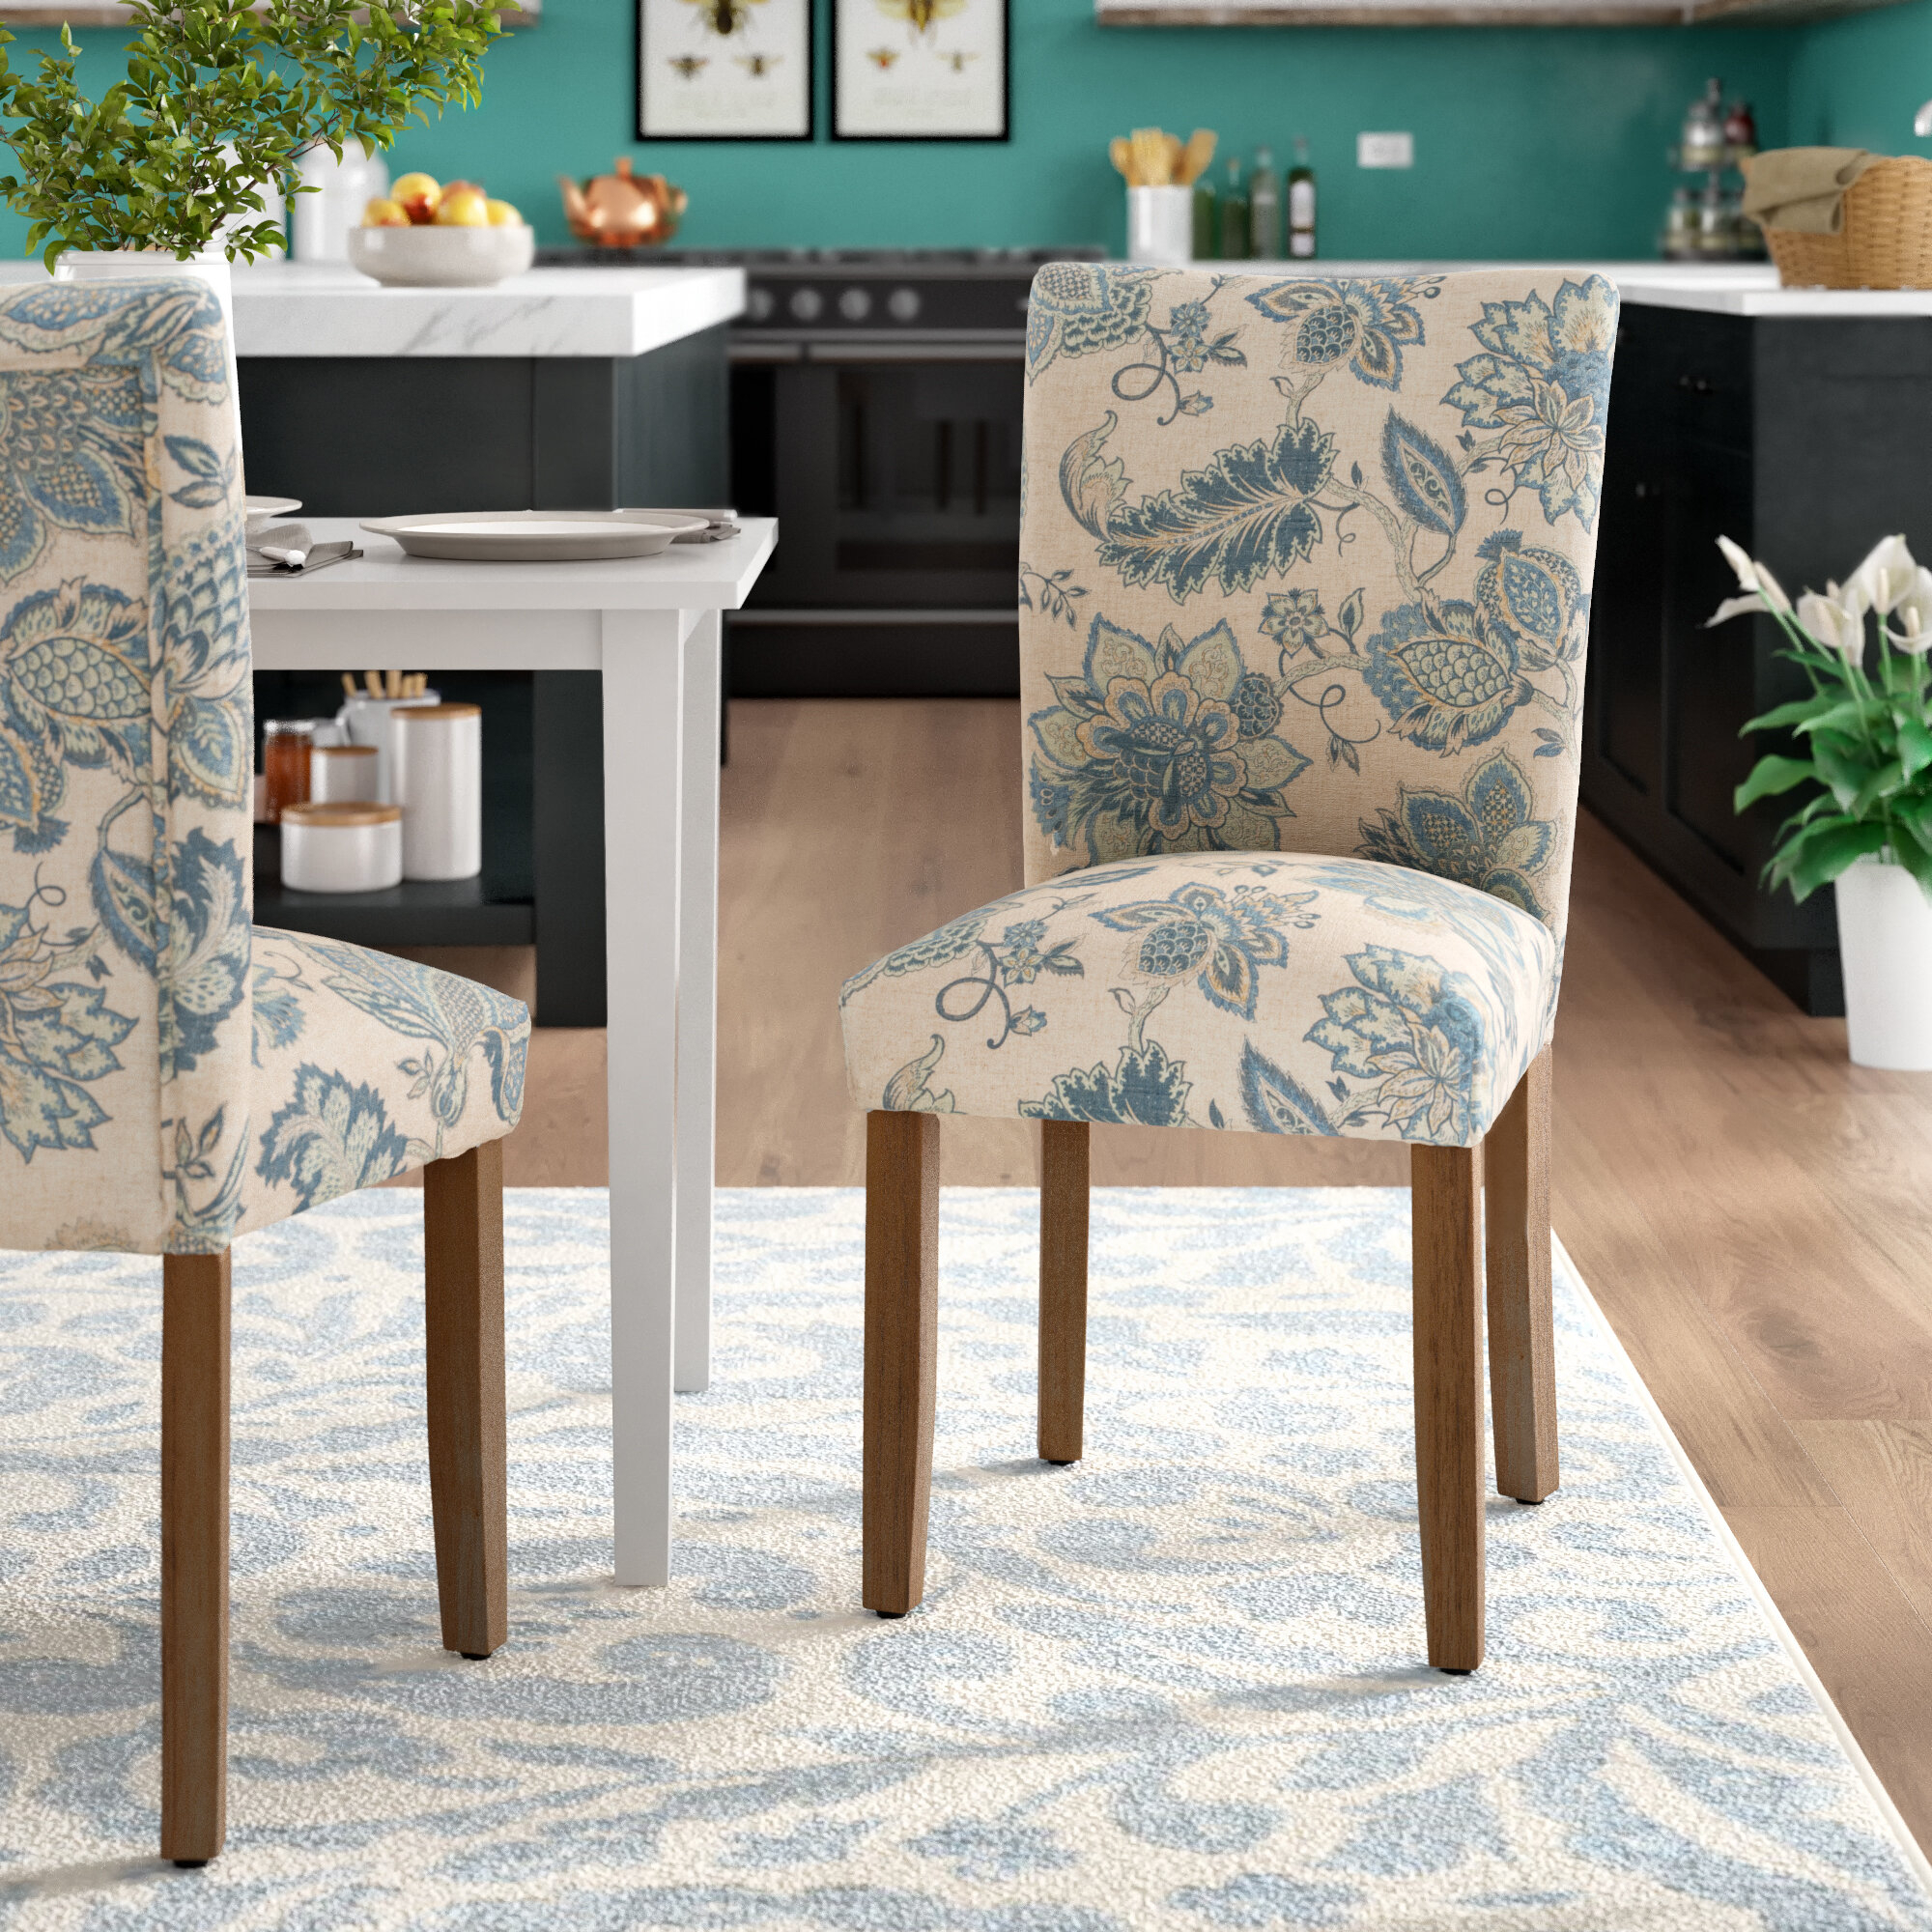 August Grove® Gaillard Upholstered Parsons Chair In Tan/Blue In Bob Stripe Upholstered Dining Chairs (Set Of 2) (View 12 of 15)